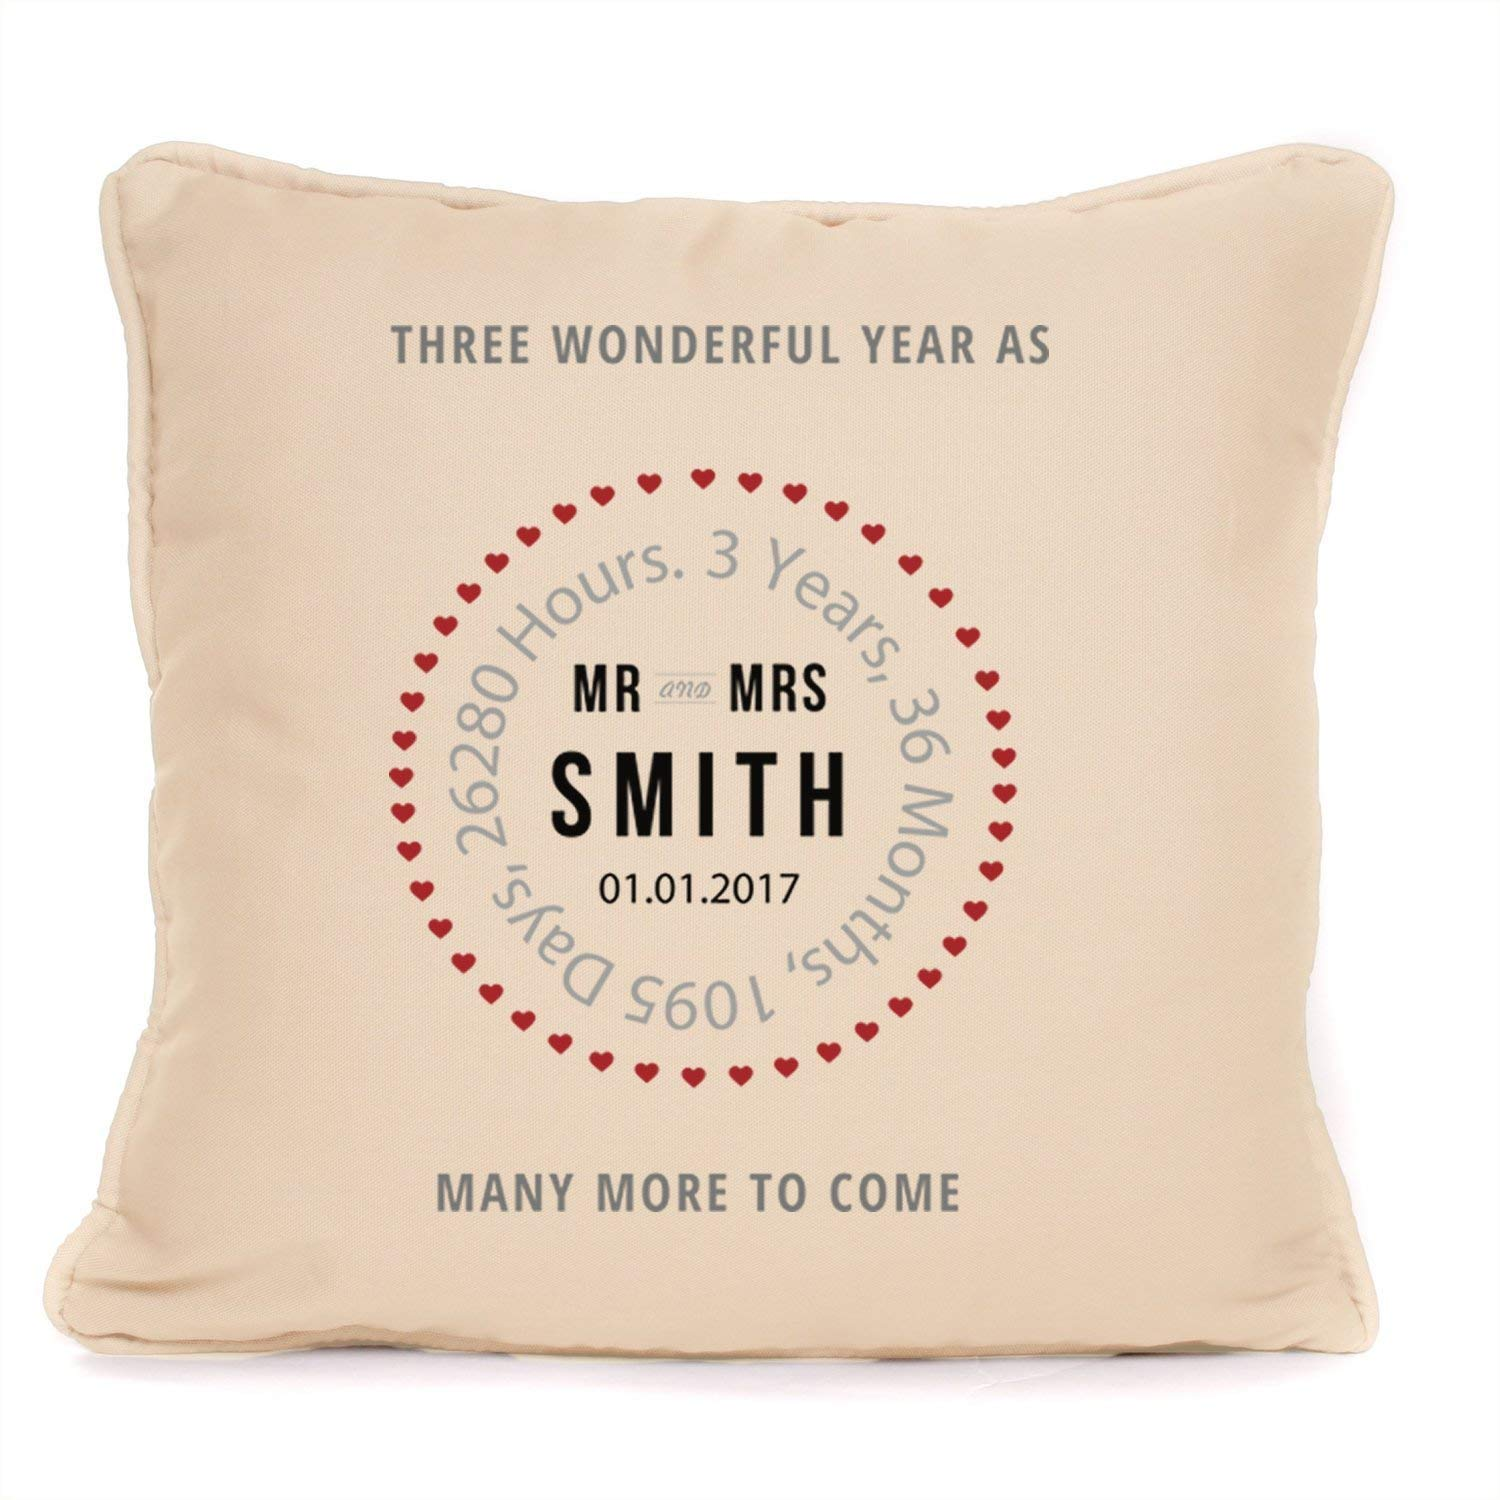 Amazon Com Personalized Third Wedding Anniversary Gift Stamp Design Throw Pillowcase 18x18 Inch The Perfect Present For A 3rd Anniversary Handmade